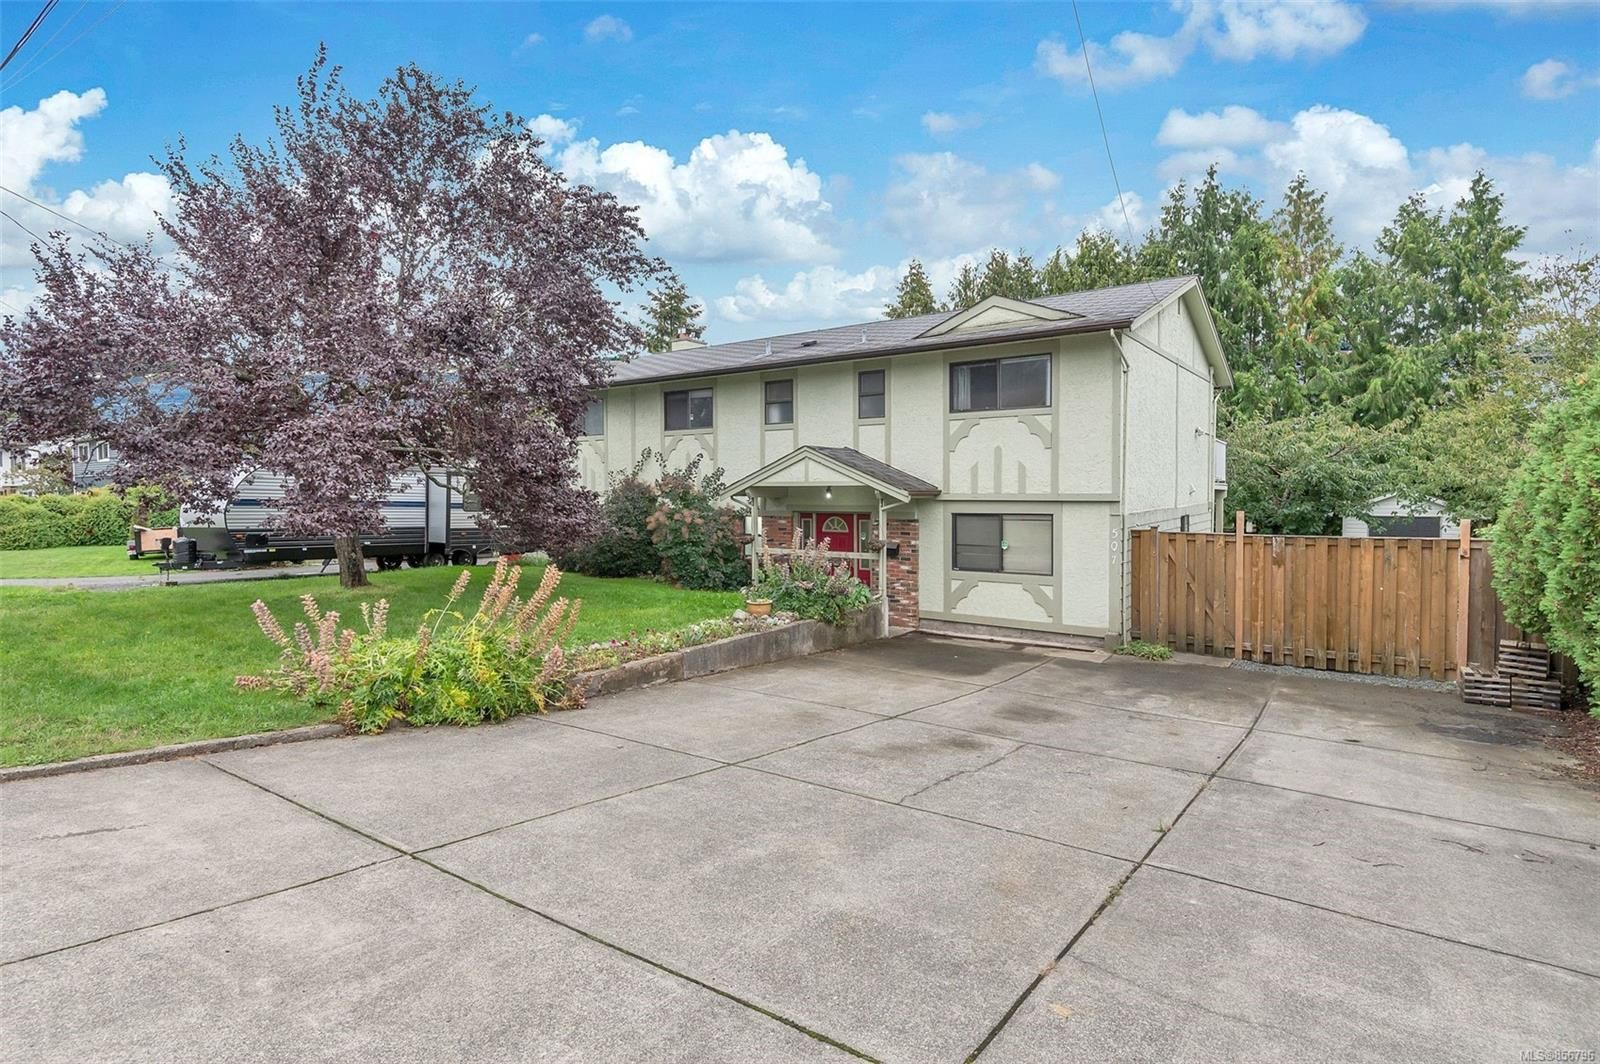 Main Photo: 507 Sandowne Dr in : CR Campbell River Central House for sale (Campbell River)  : MLS®# 856796